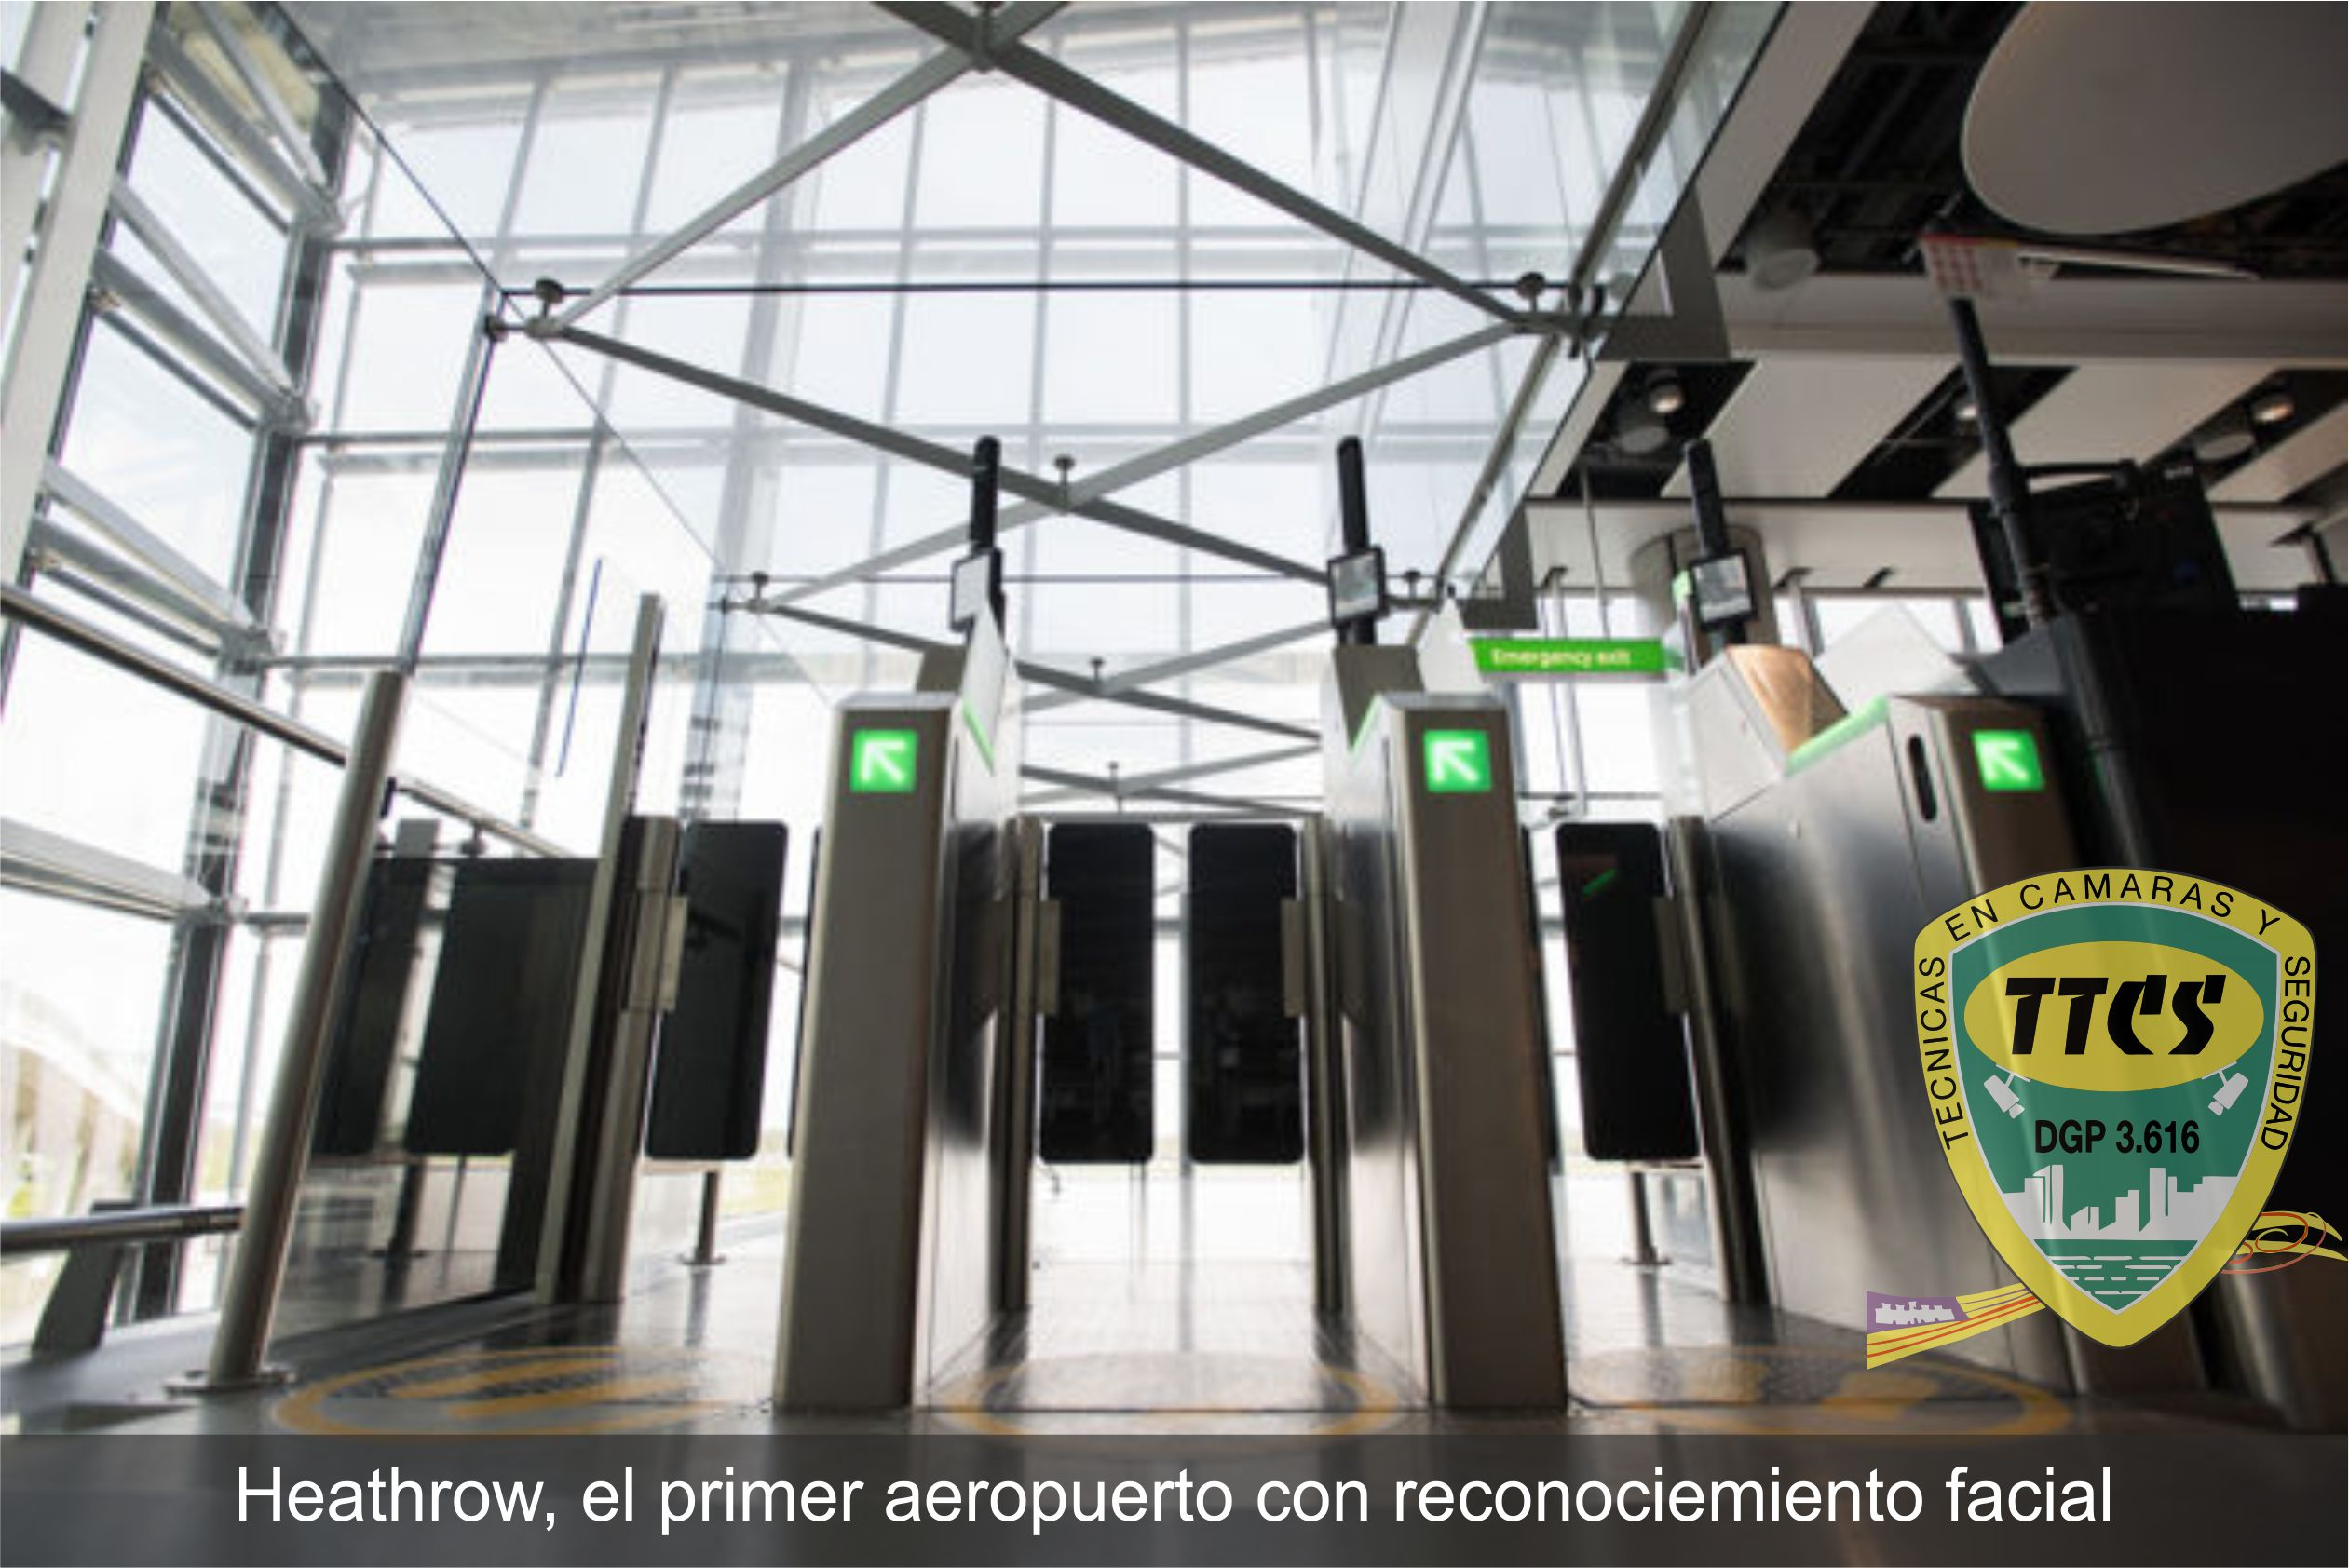 Aeropuerto de Heathrow biometria 2 605x404